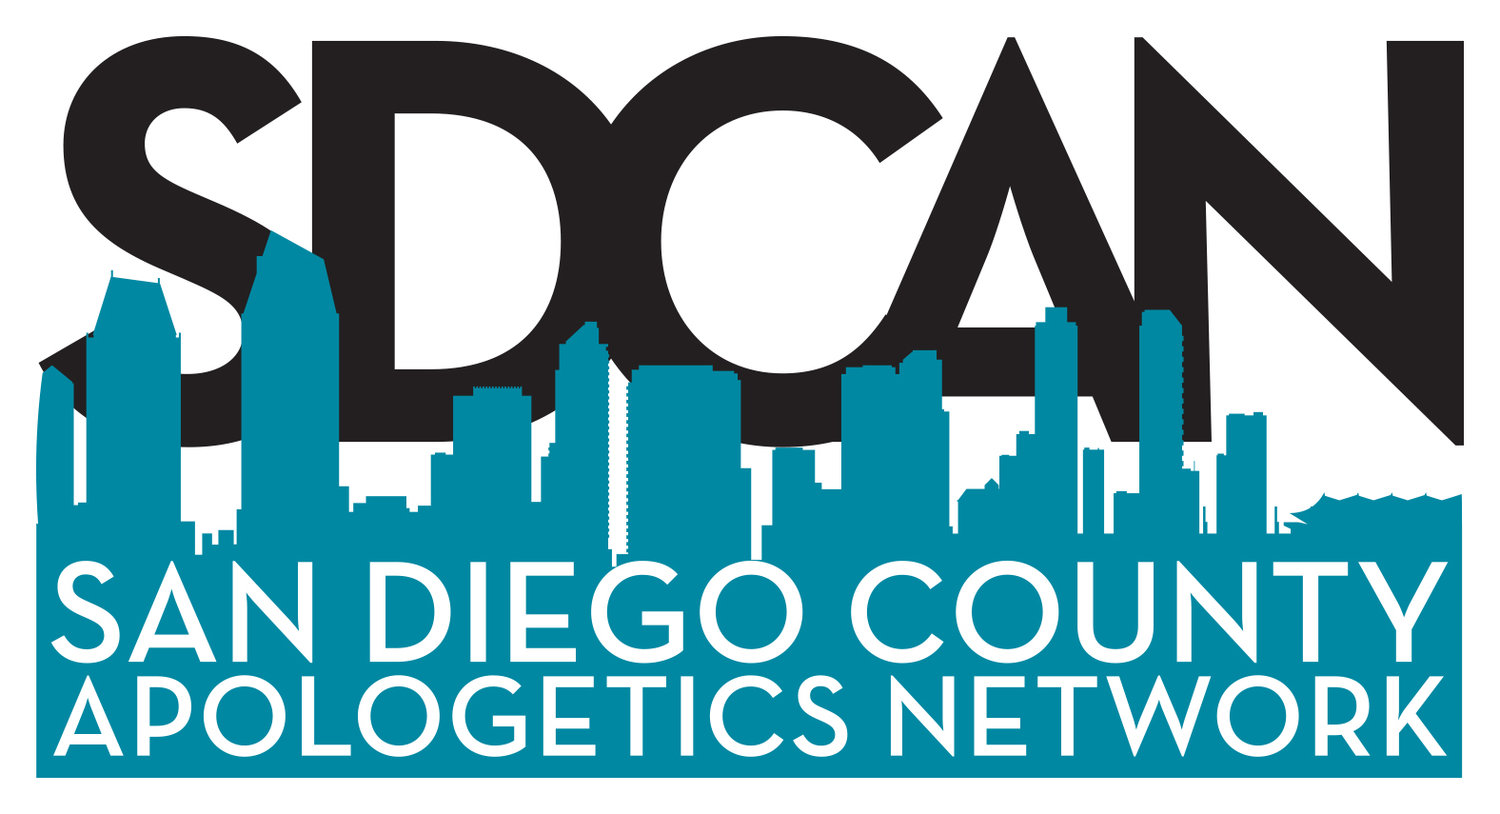 San Diego County Apologetics Network